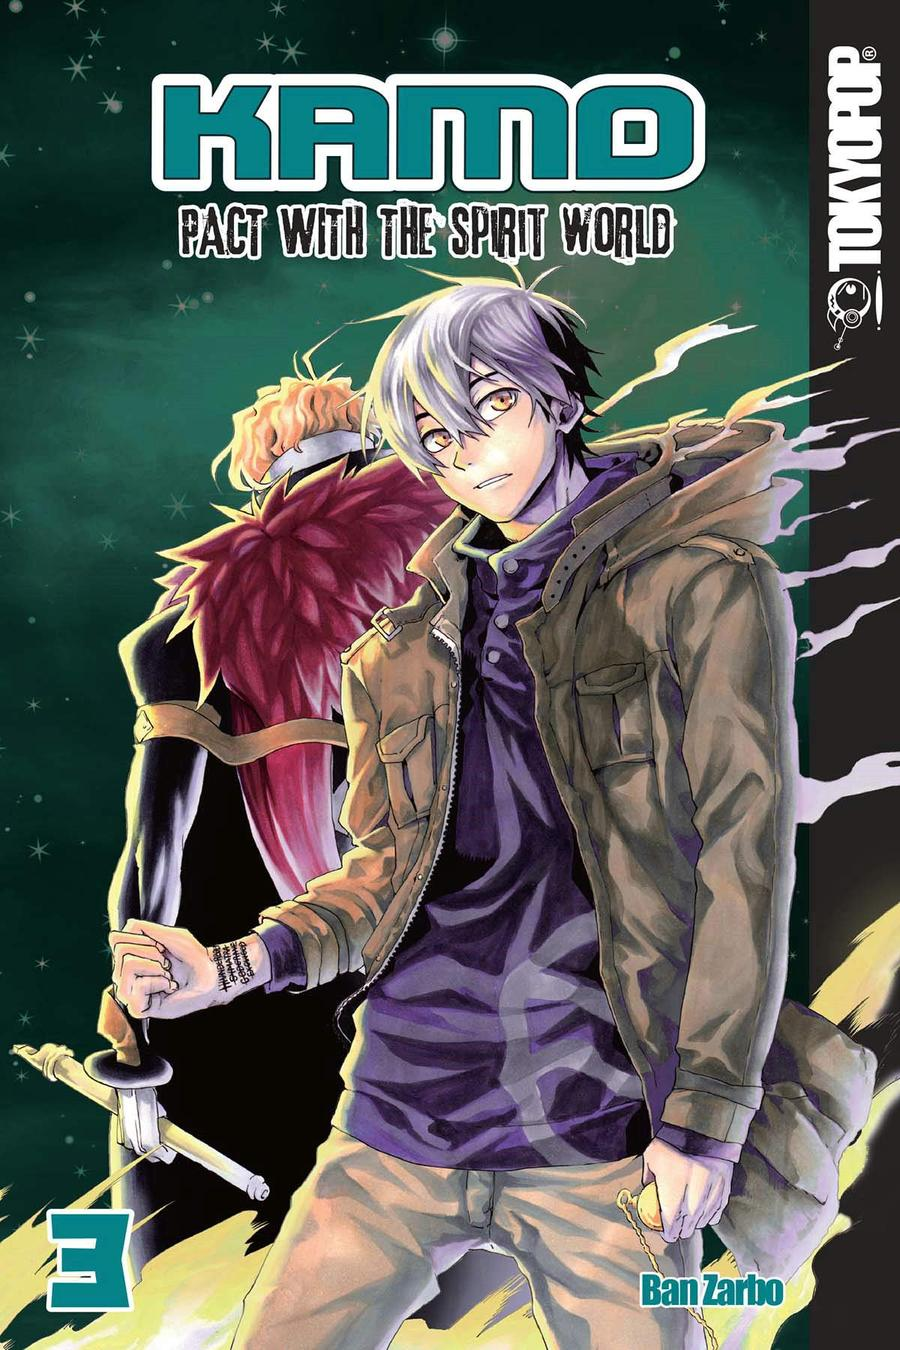 Kamo Pact With The Spirit World Vol 3 GN